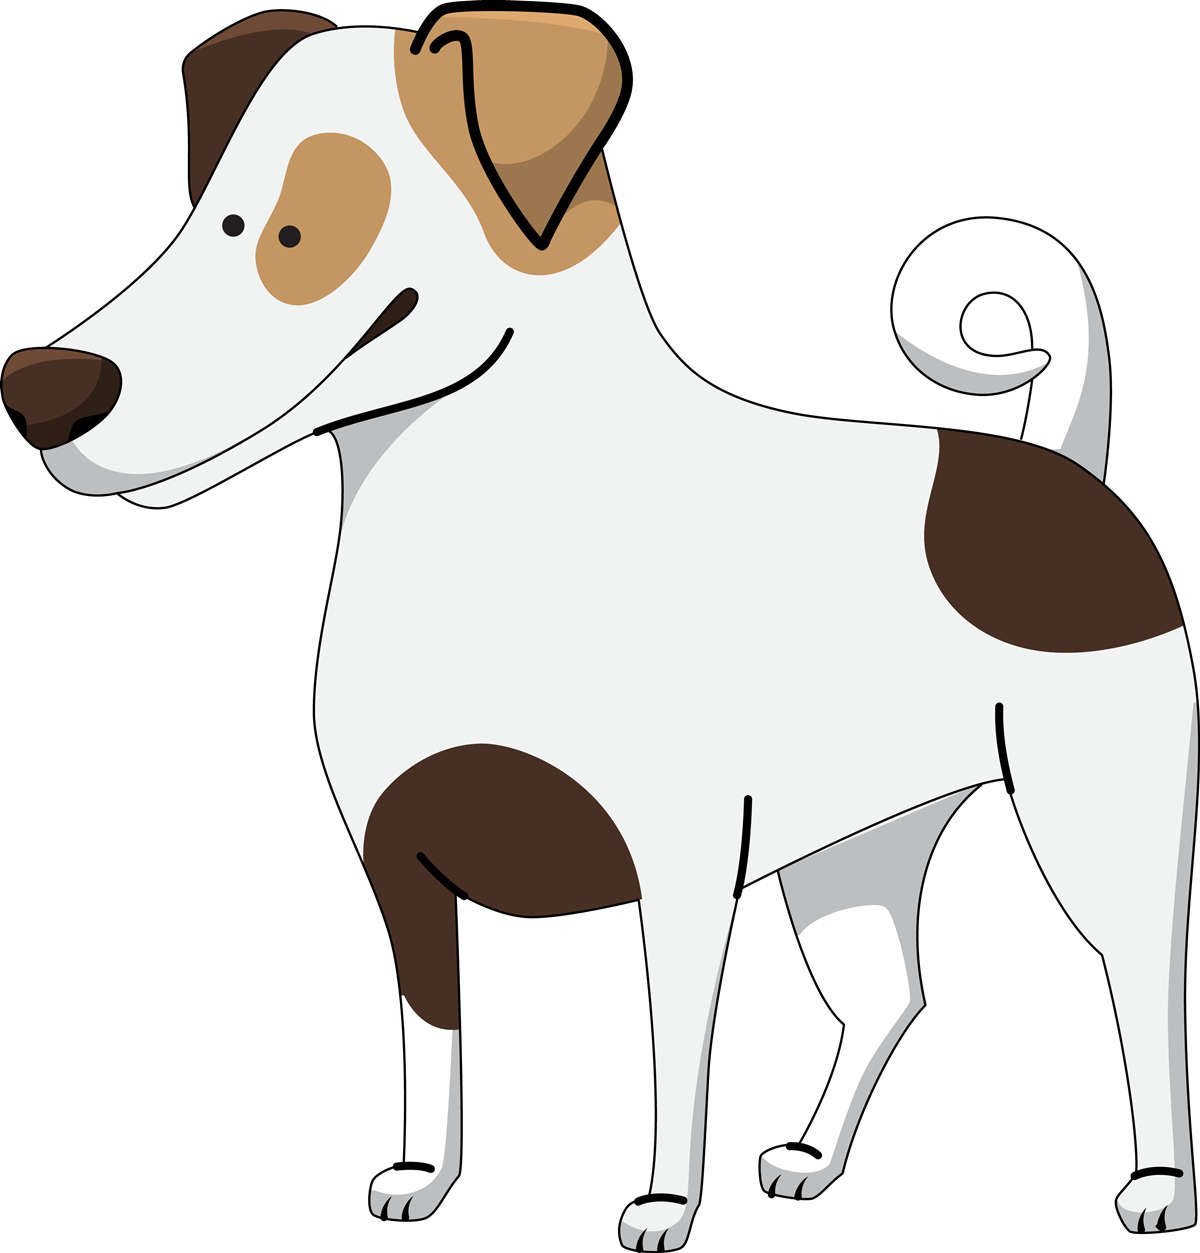 Jack Russell Terrier clipart Use & Free Public 2